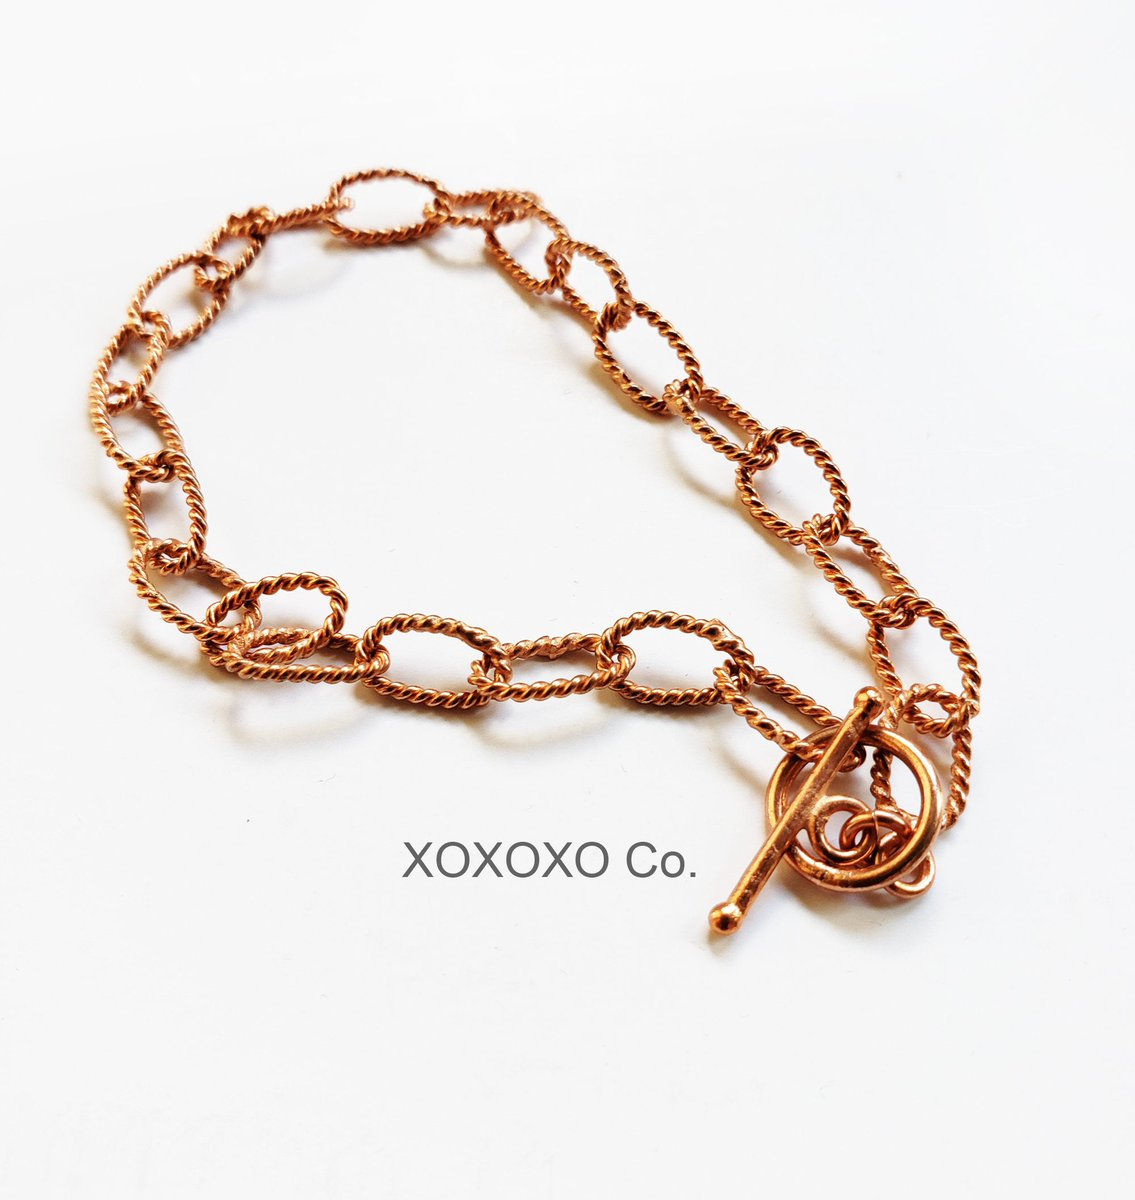 Solid Copper Bracelet Rope Link Chain Copper Toggle Clasp https://t.co/MTK8flSW7d #style #fashion #handmadejewelry #handmade #Etsy #shopsmall #jewelryblogger #giftsforher #christmasgifts https://t.co/JxZQ9gOgCv